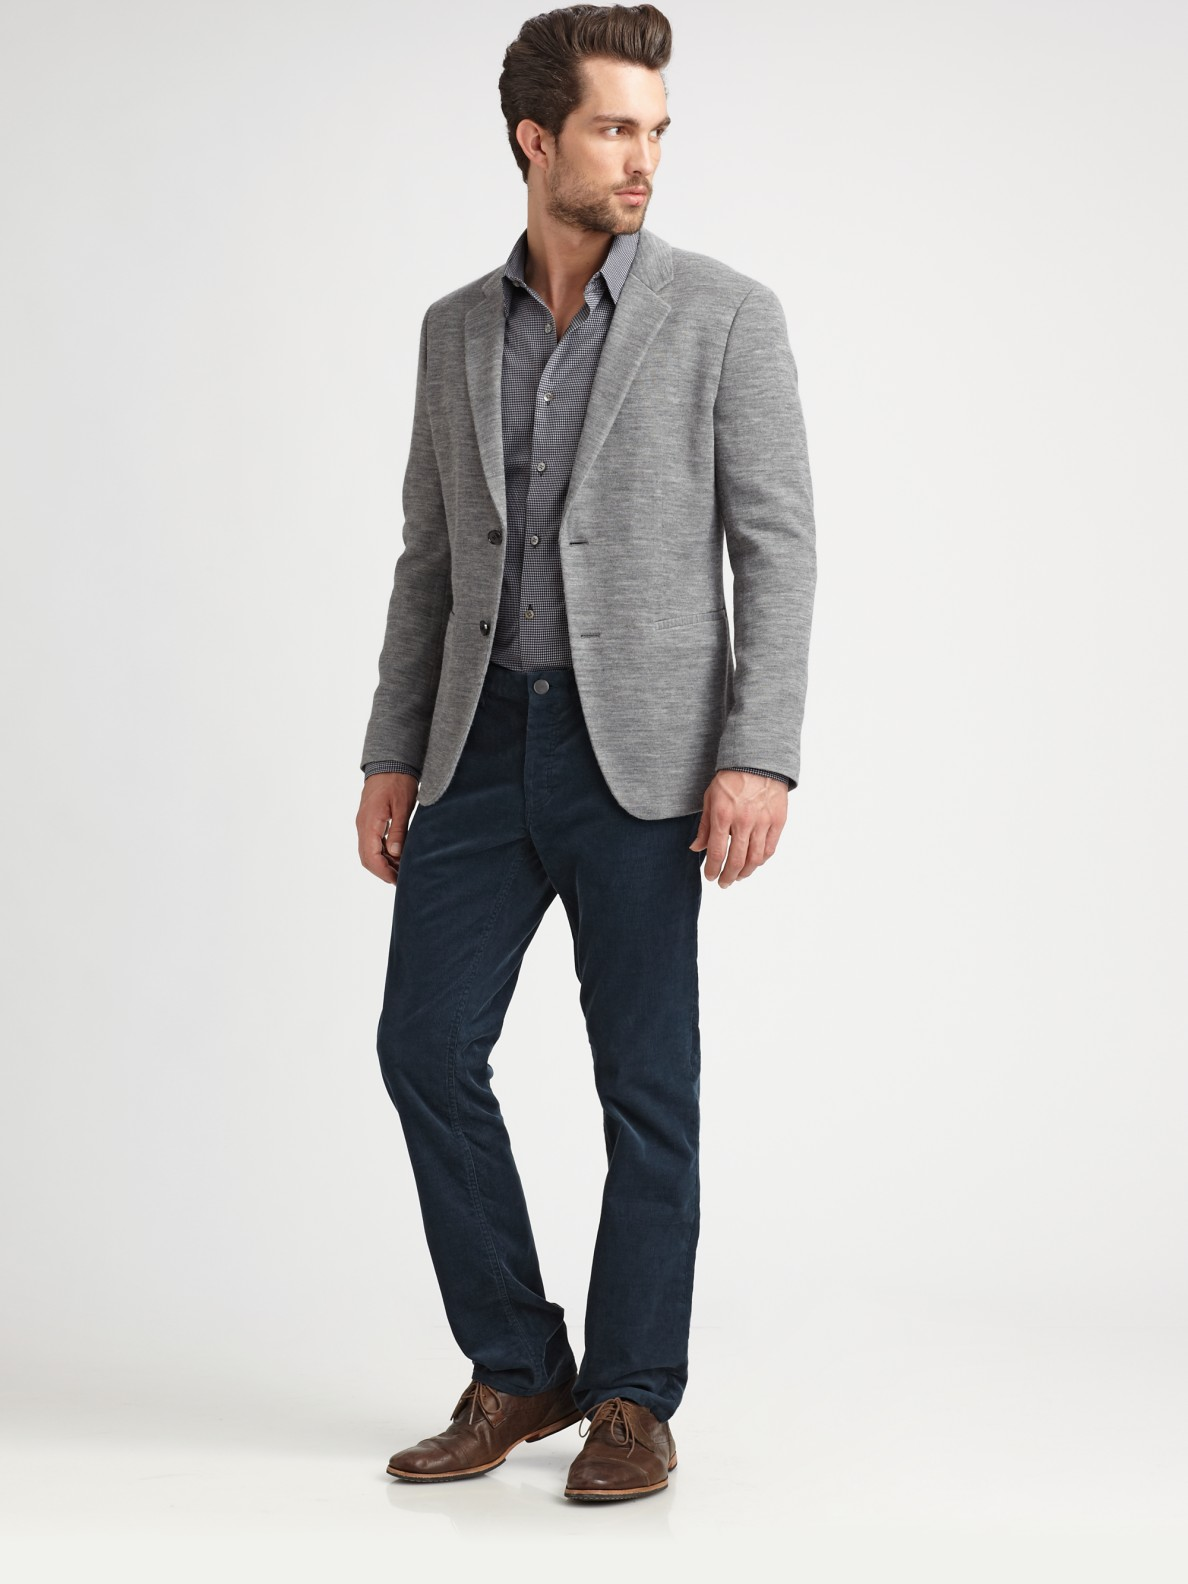 Lyst - Theory Knit Blazer in Gray for Men